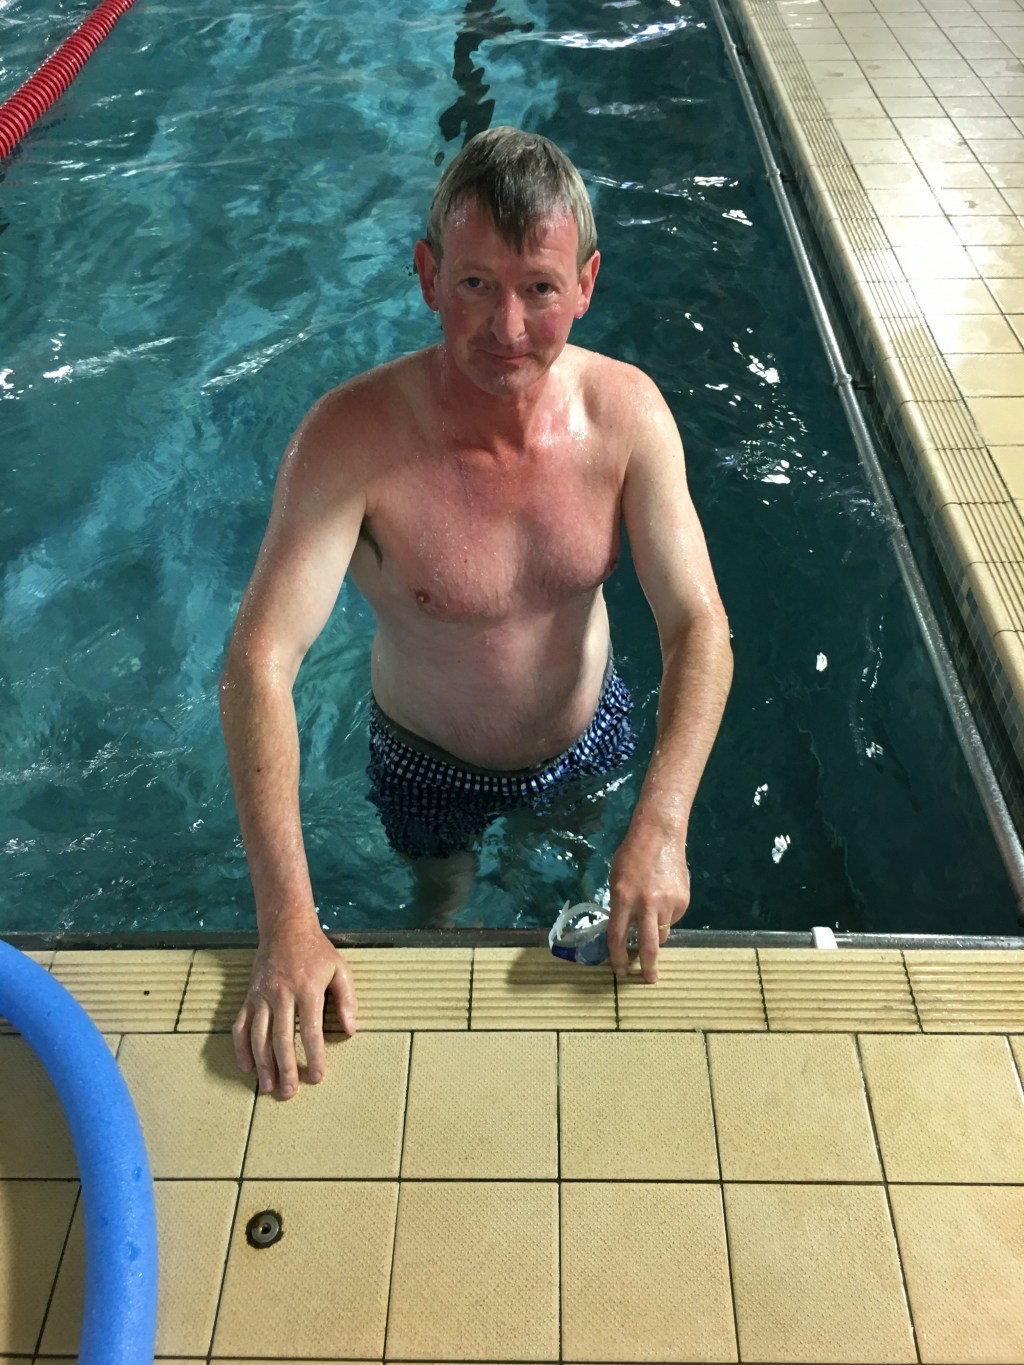 Image for: DASLS President Swims for Air Ambulance